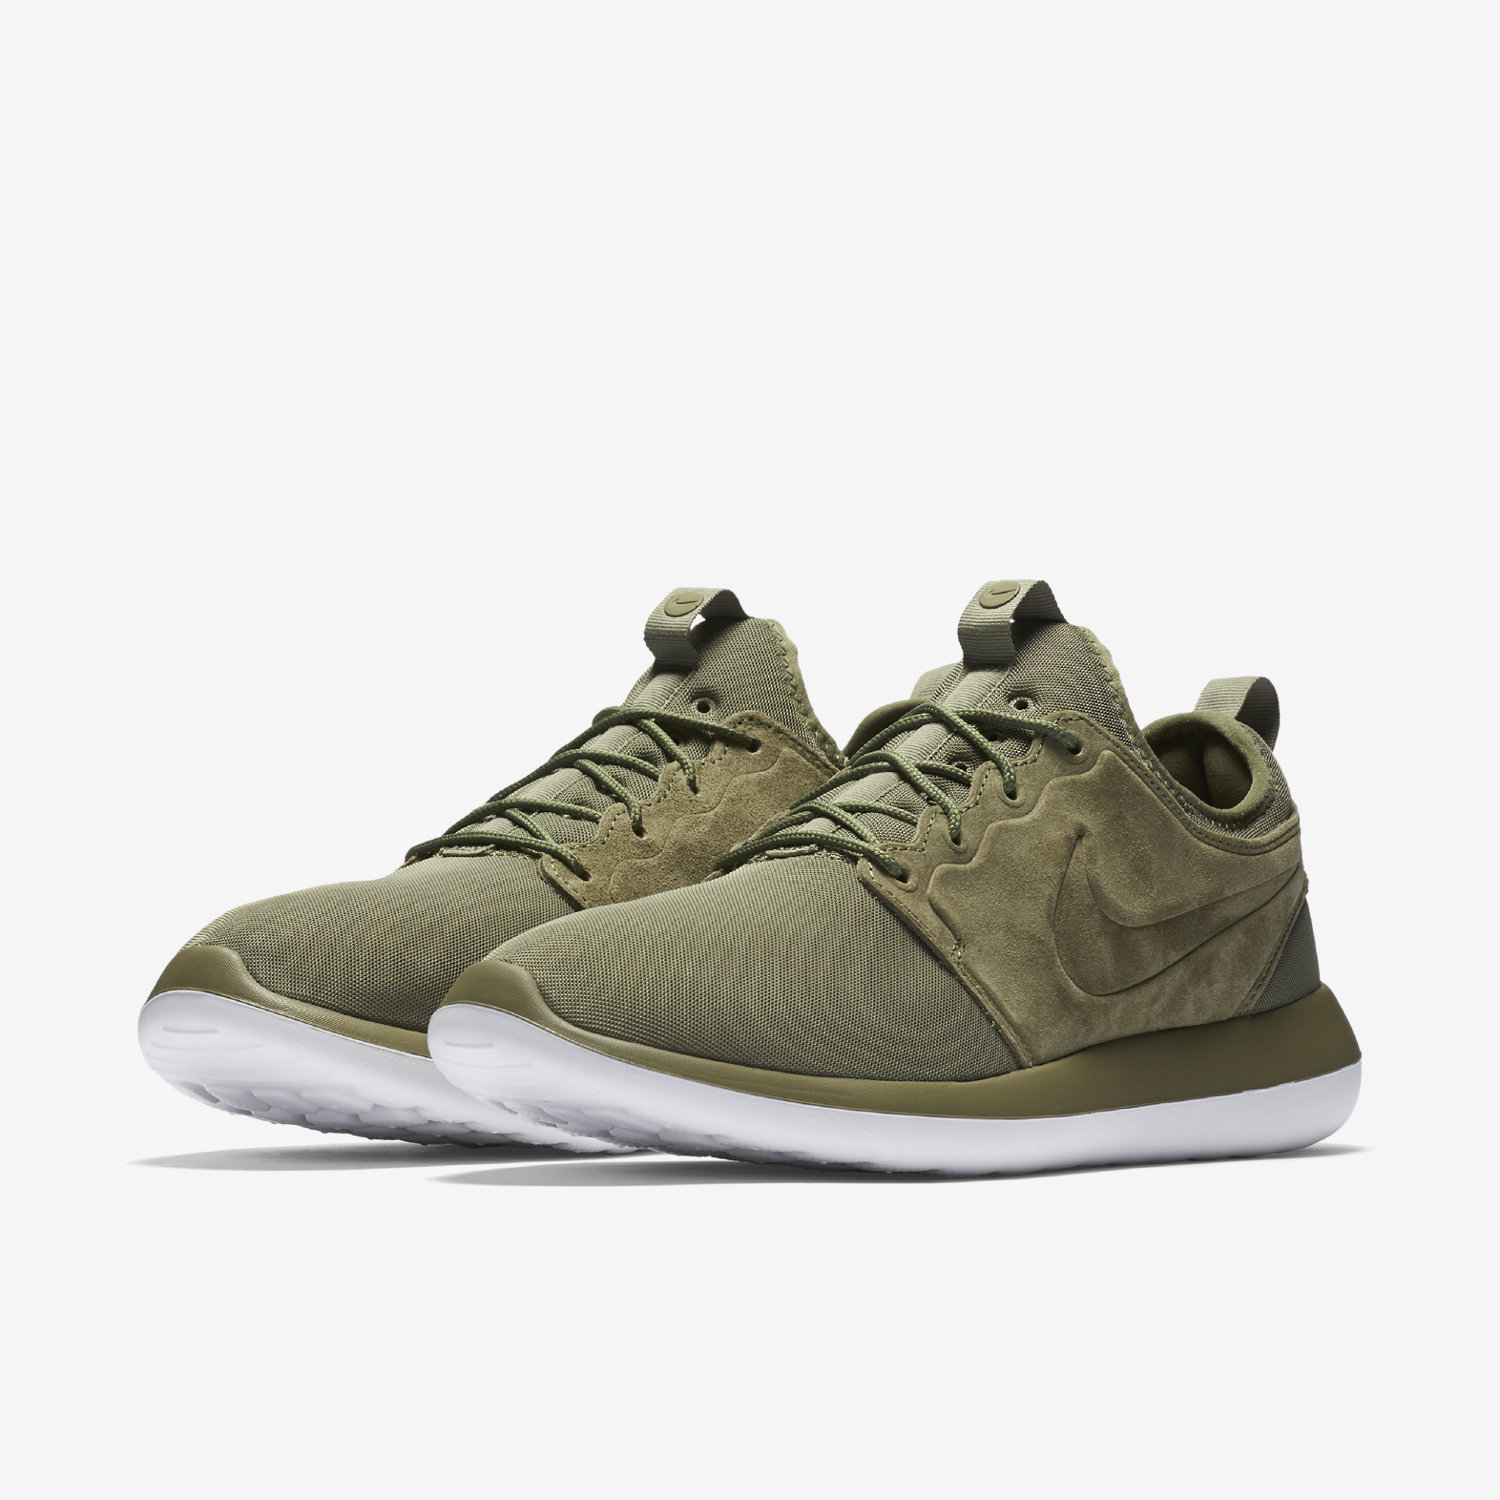 Nike Roshe Two Flyknit 844833 004 Stadium Goods